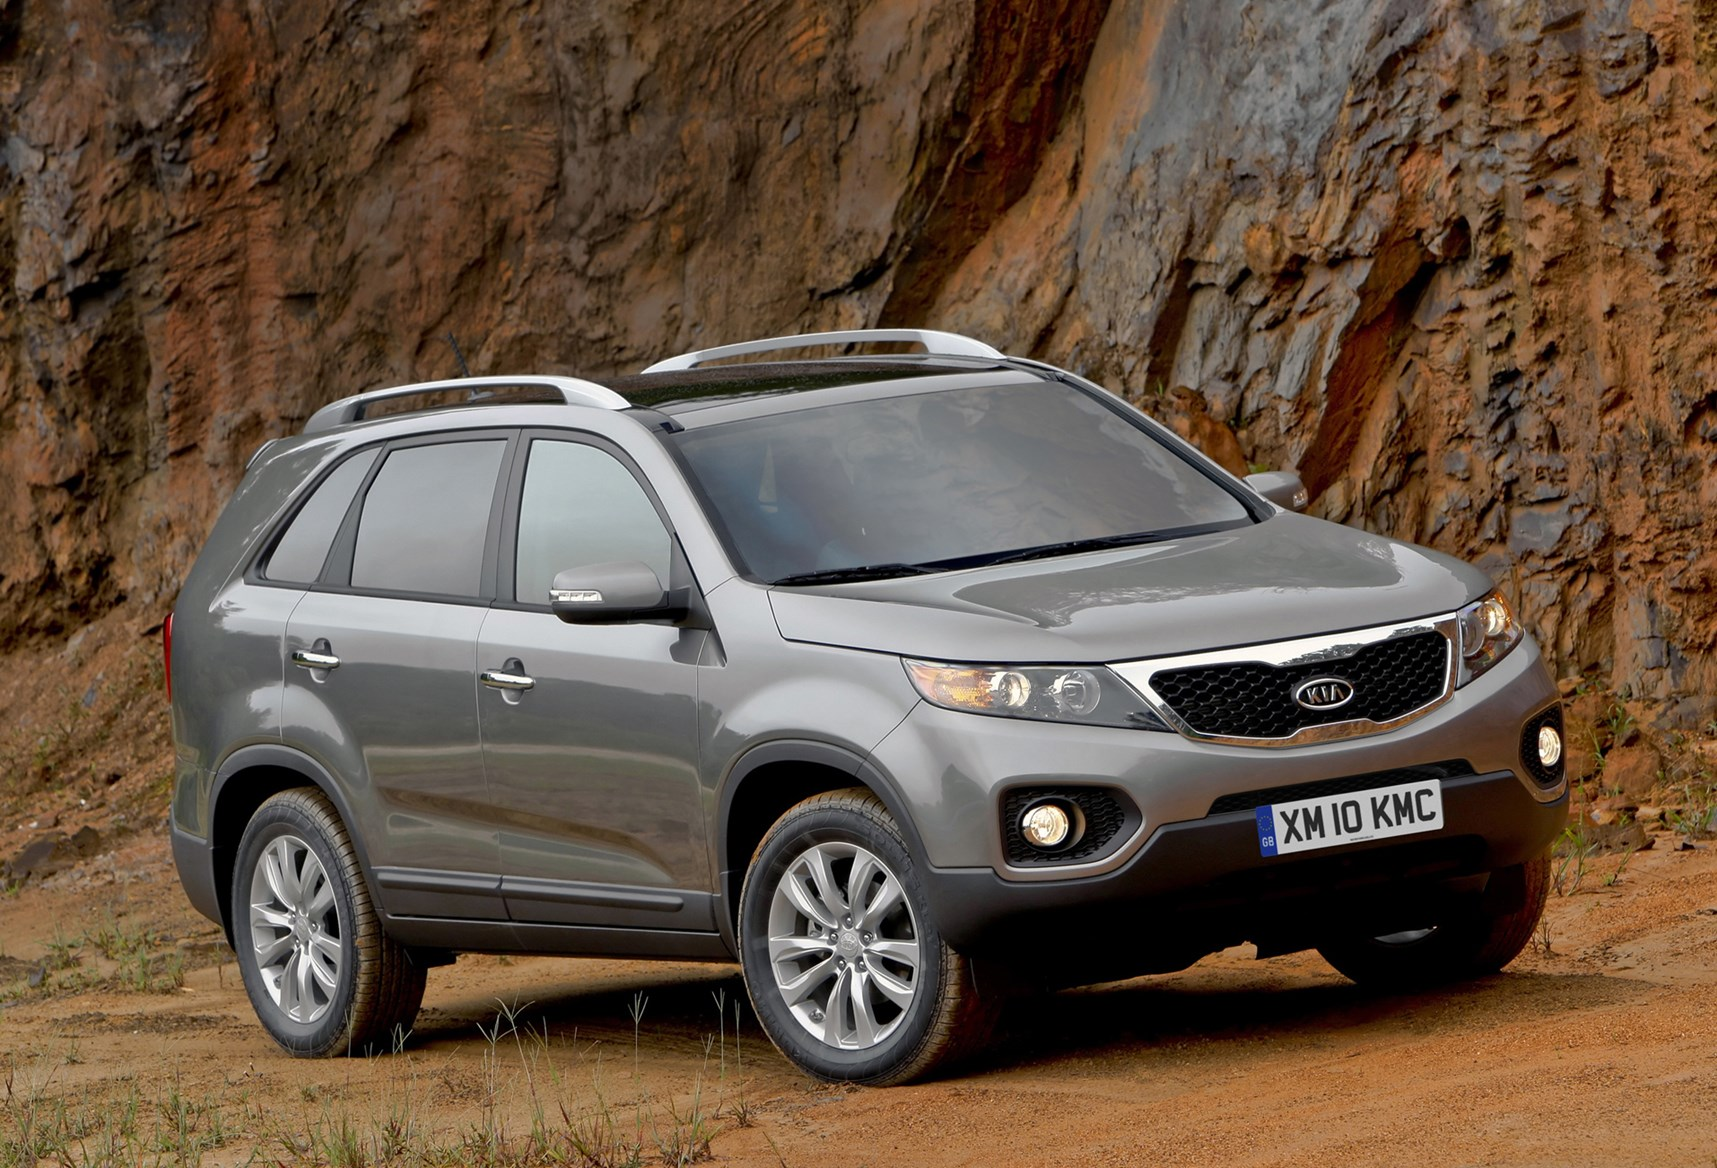 graphite cars sorento kx sonata kia motors in uk the discover new generation third